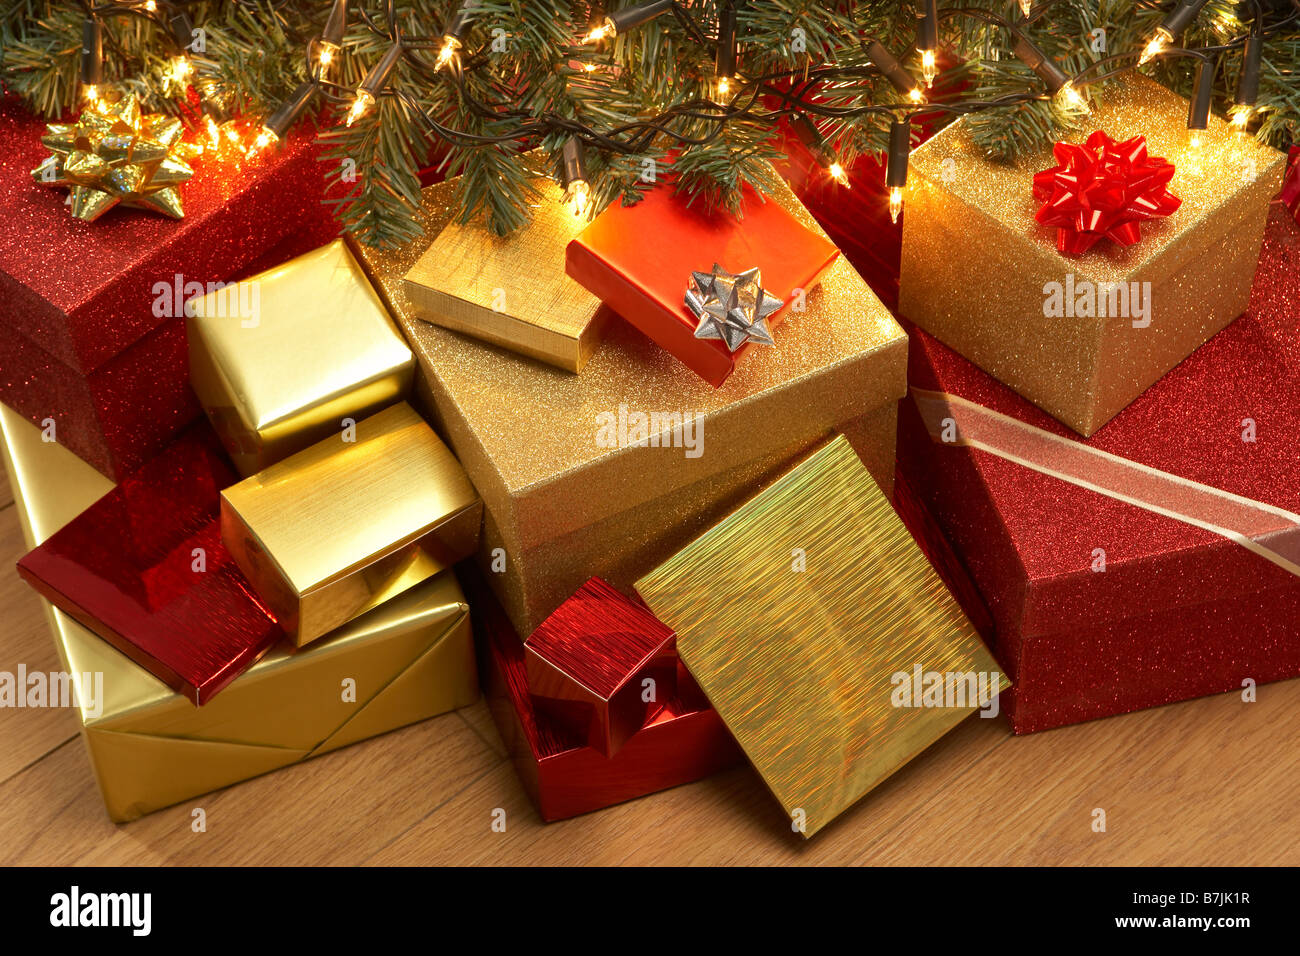 Group Of Christmas Presents Under Tree - Stock Image